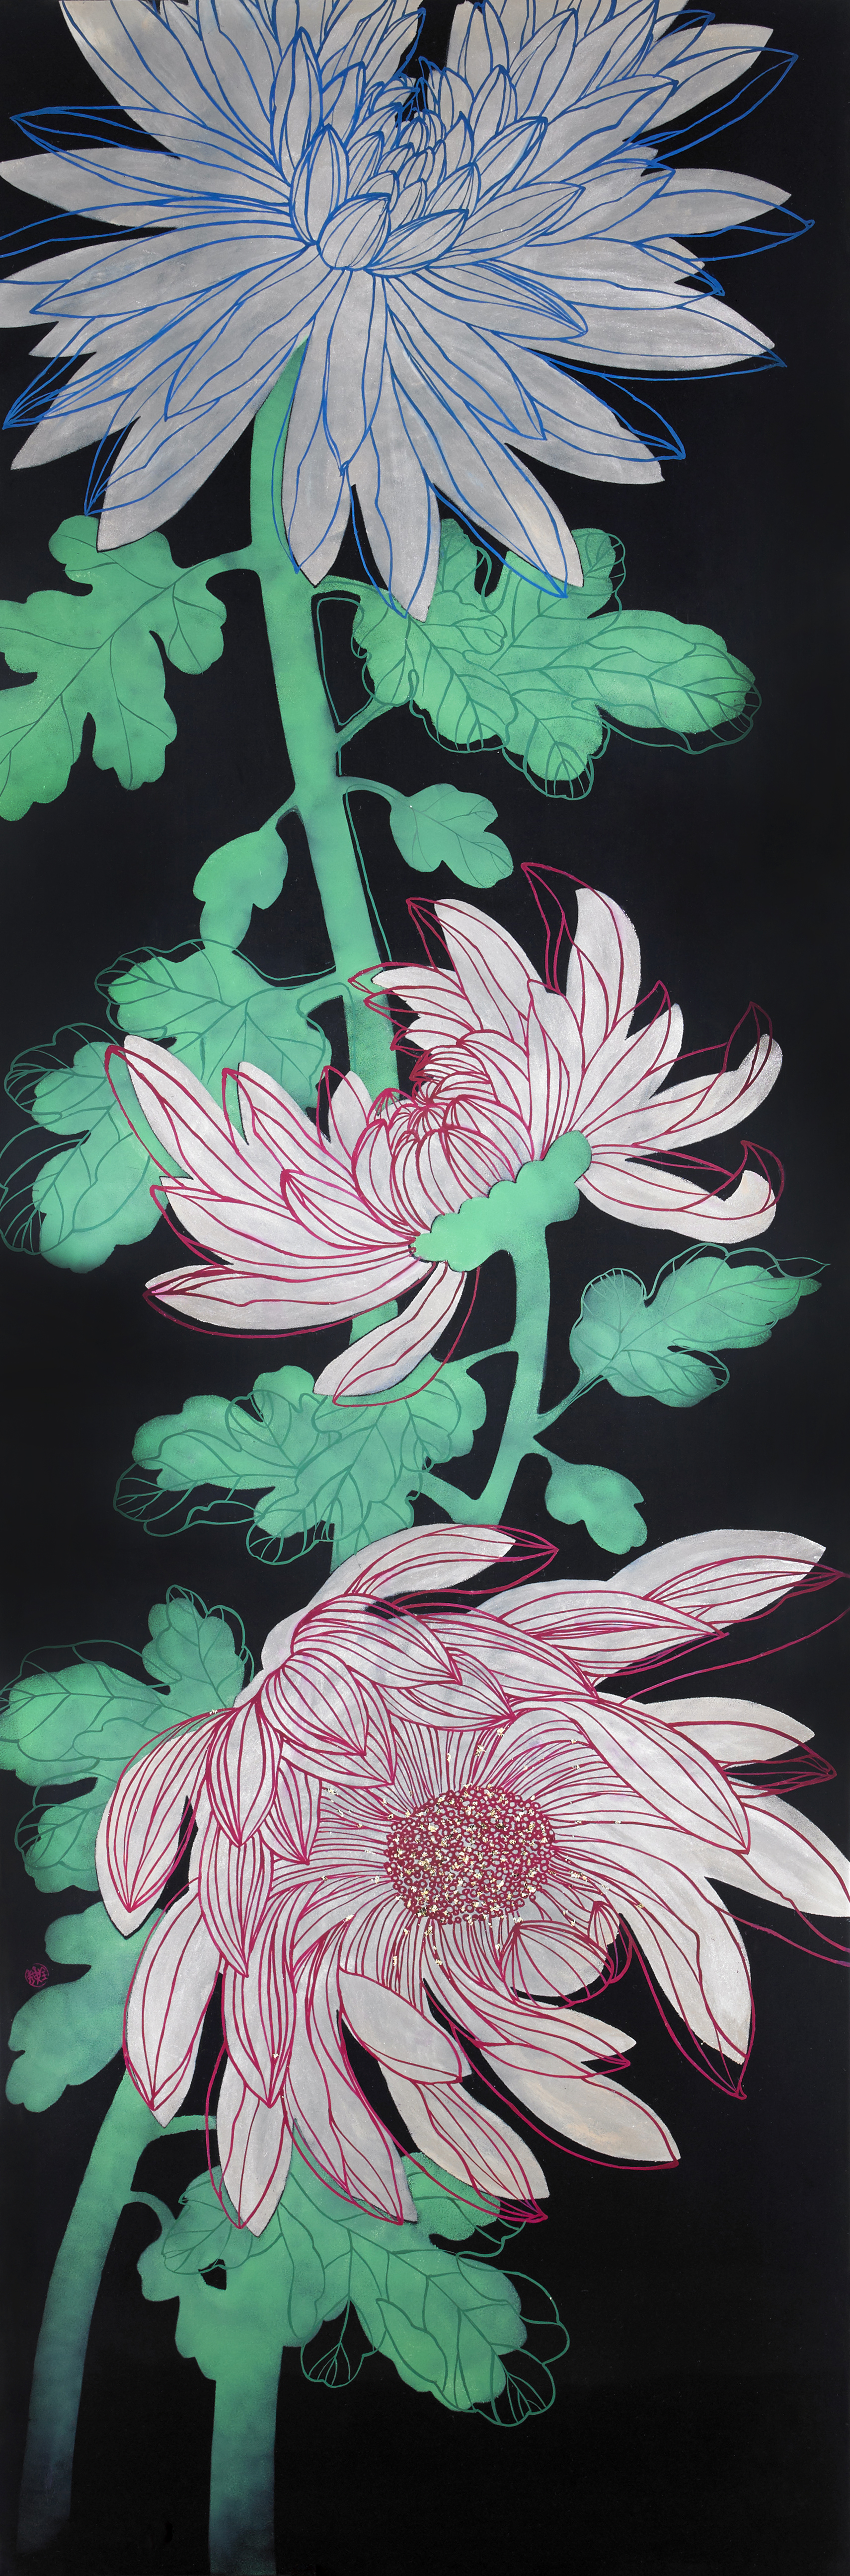 Fragrance of Chrysanthemum_120x40cm_natural lacquer on wooden panel_2017